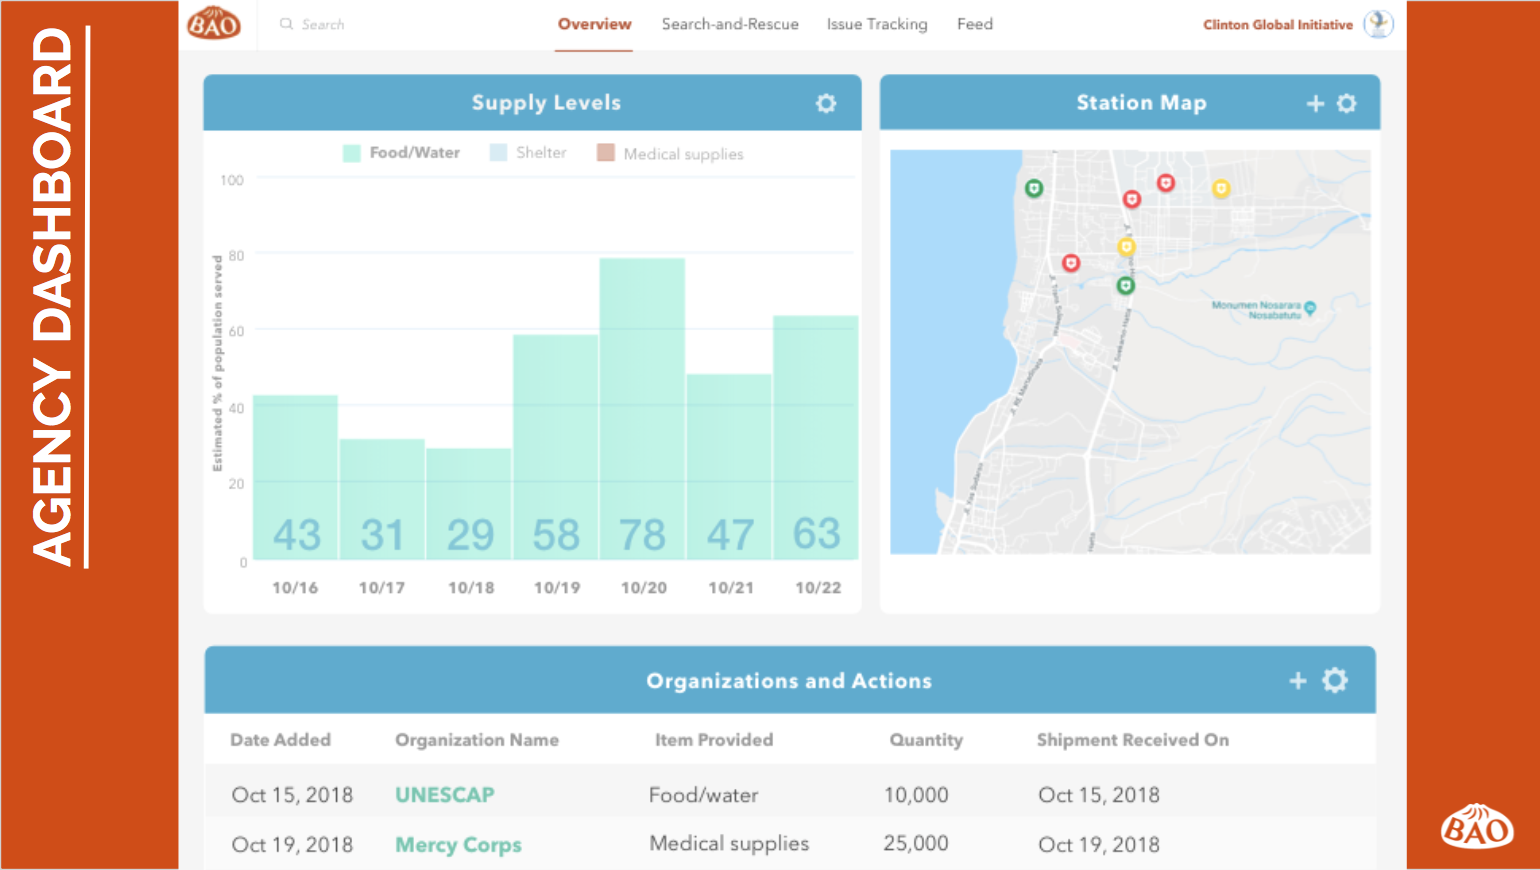 One of the key challenges in disaster relief is coordinating across the multiple parties involved: local volunteers, local governments, international agencies, and individuals. To address this, BAO designed a cloud-based dashboard for individuals to log activities and report item usage. (BAO Team)